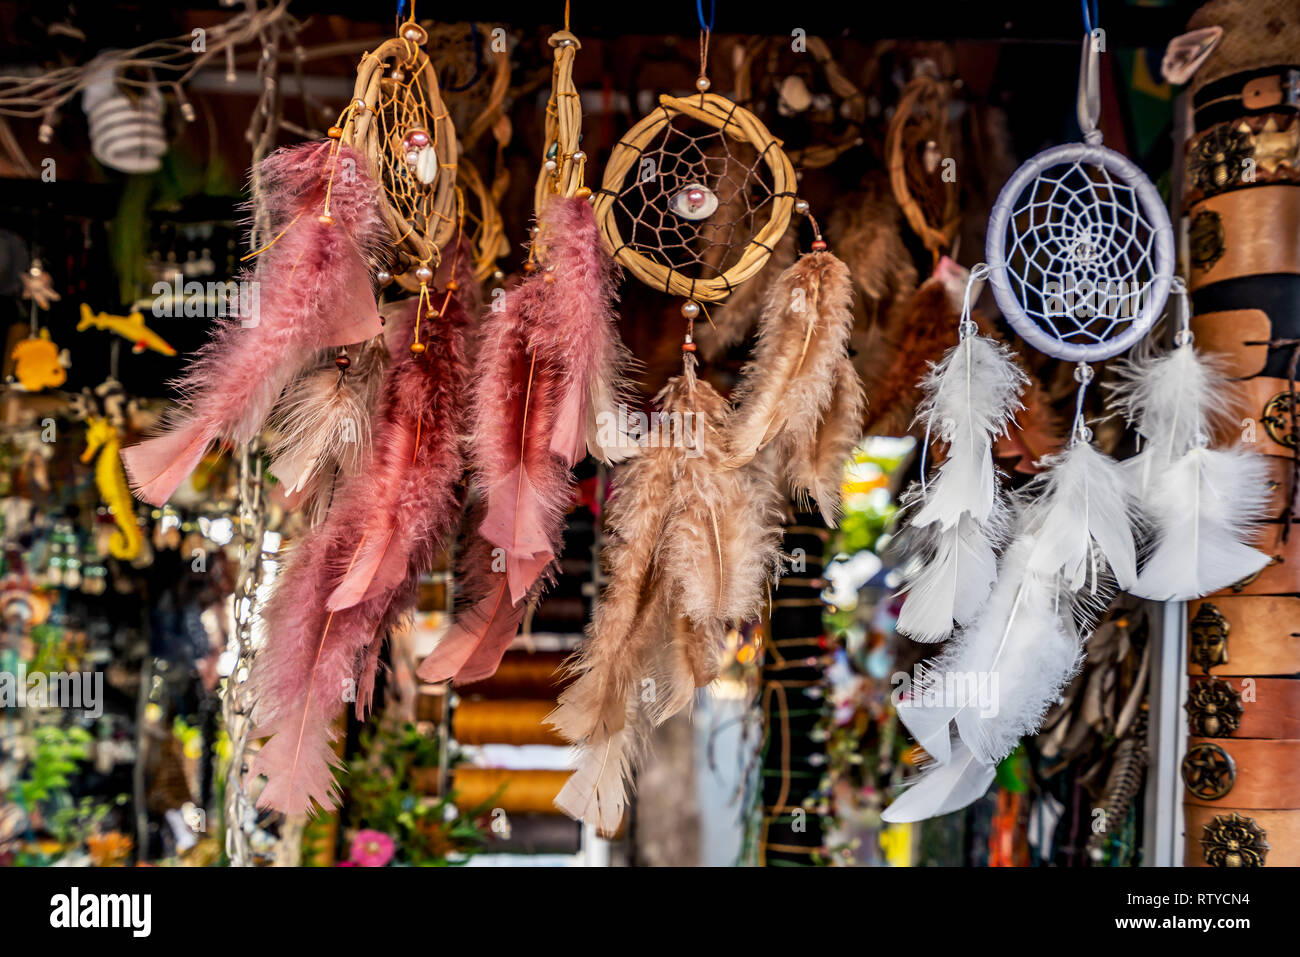 Dreamcatcher, colorful handmade native amulet used for decoration and spiritual protection - Stock Image